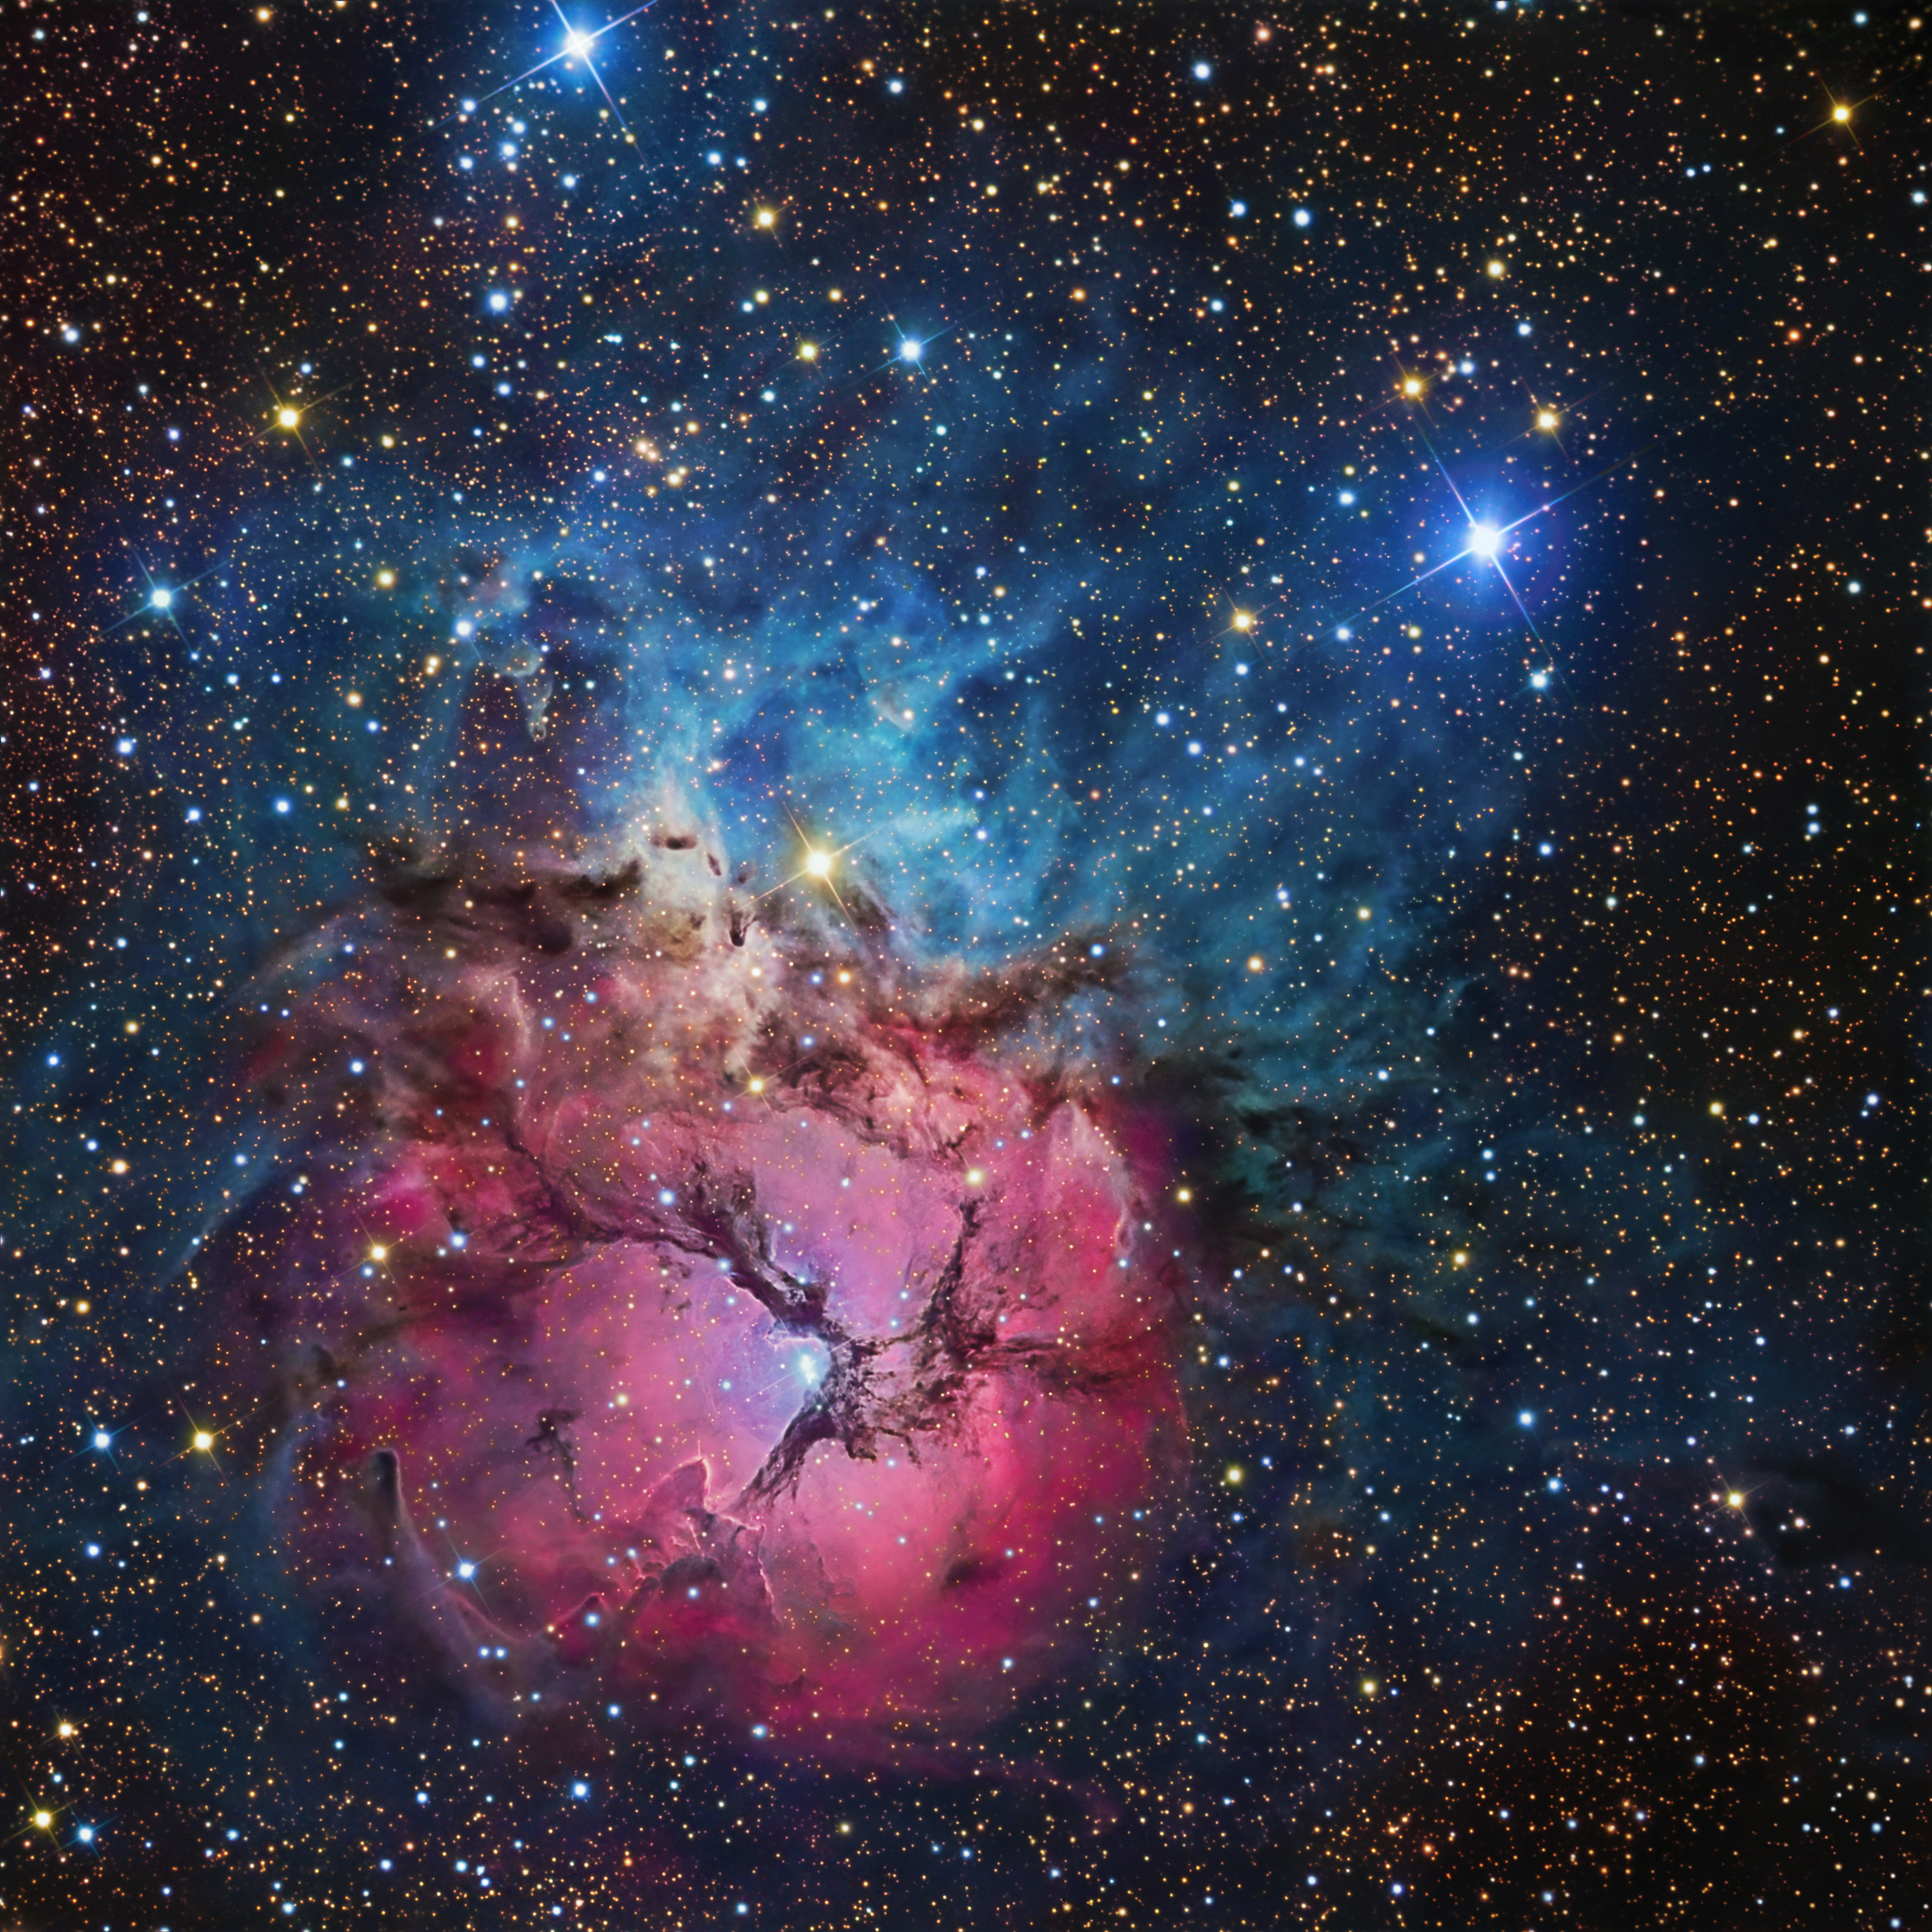 APOD: 2011 May 13 - A Beautiful Trifid